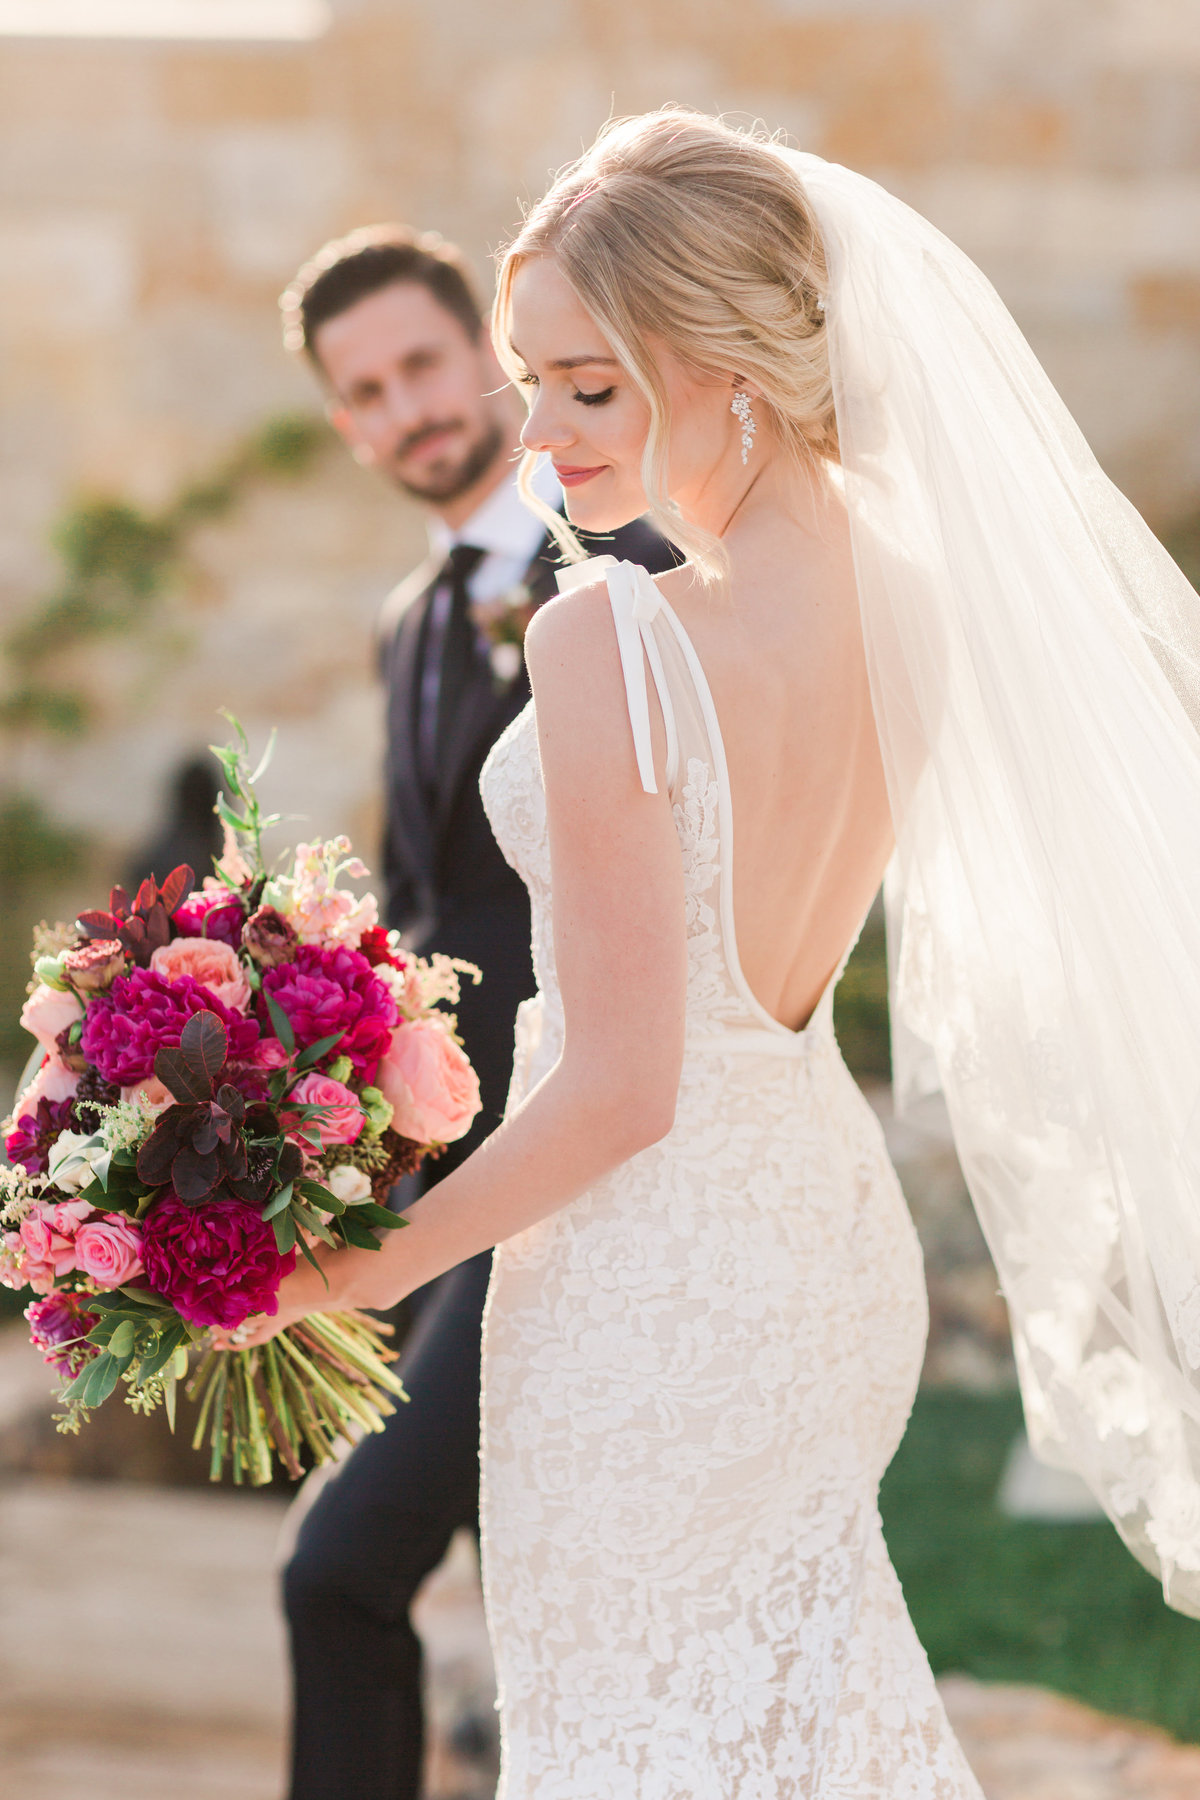 Malibu_Rocky_Oaks_Wedding_Inbal_Dror_Valorie_Darling_Photography - 114 of 160